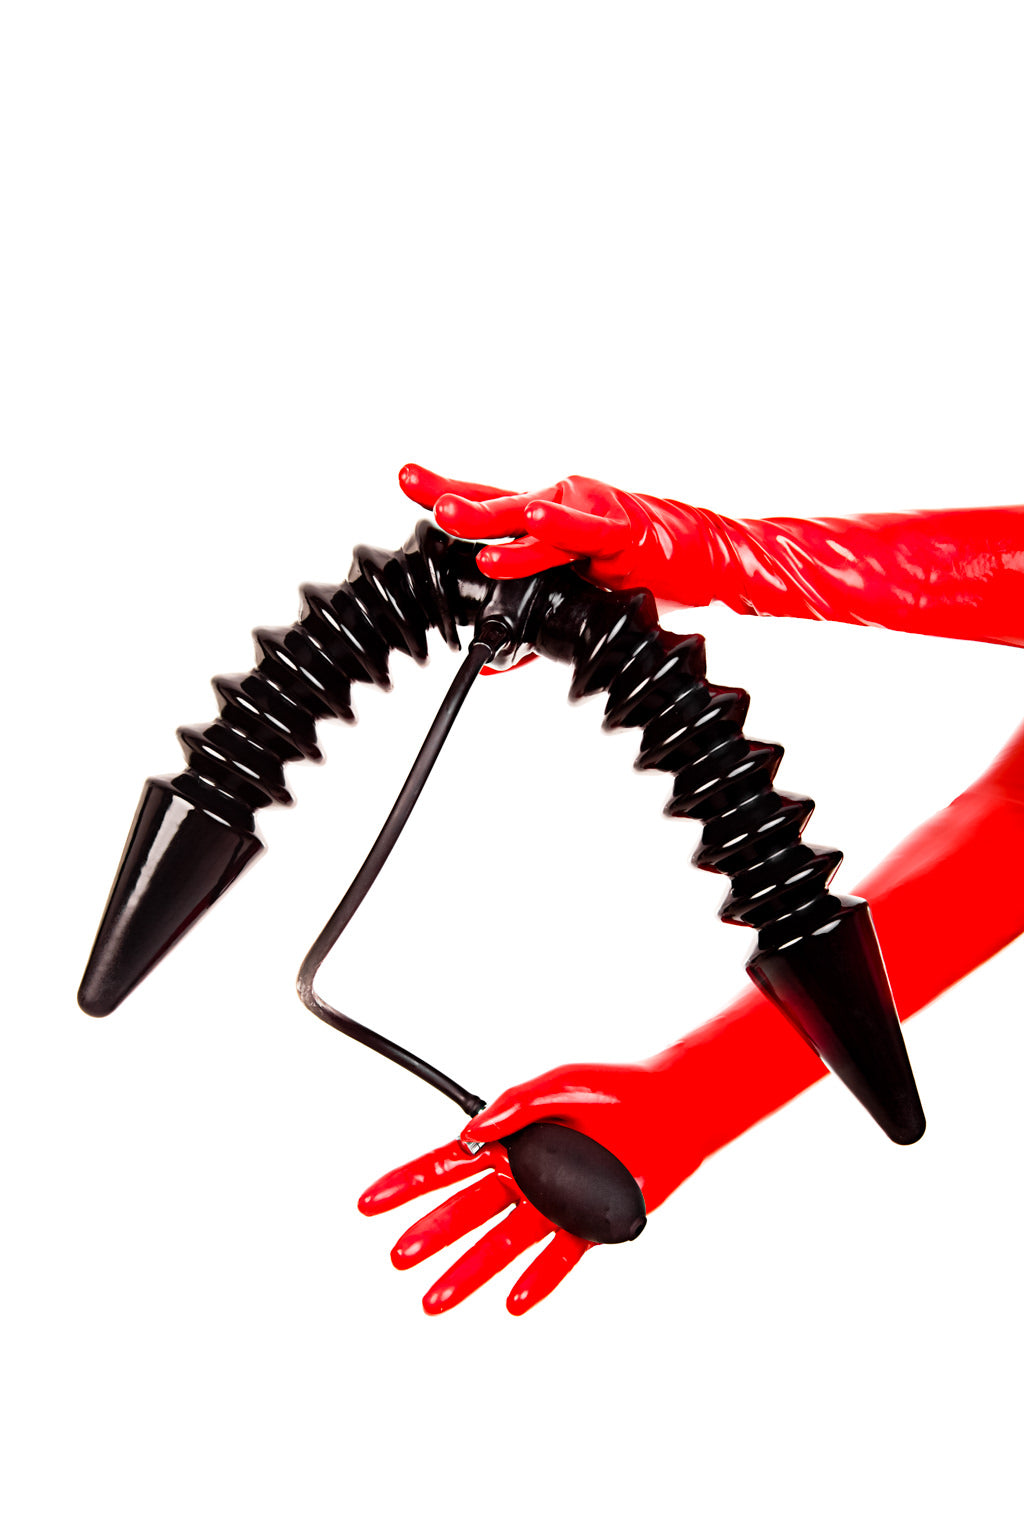 Red latex gloves holding a dual inflatable butt plug with a single pump.